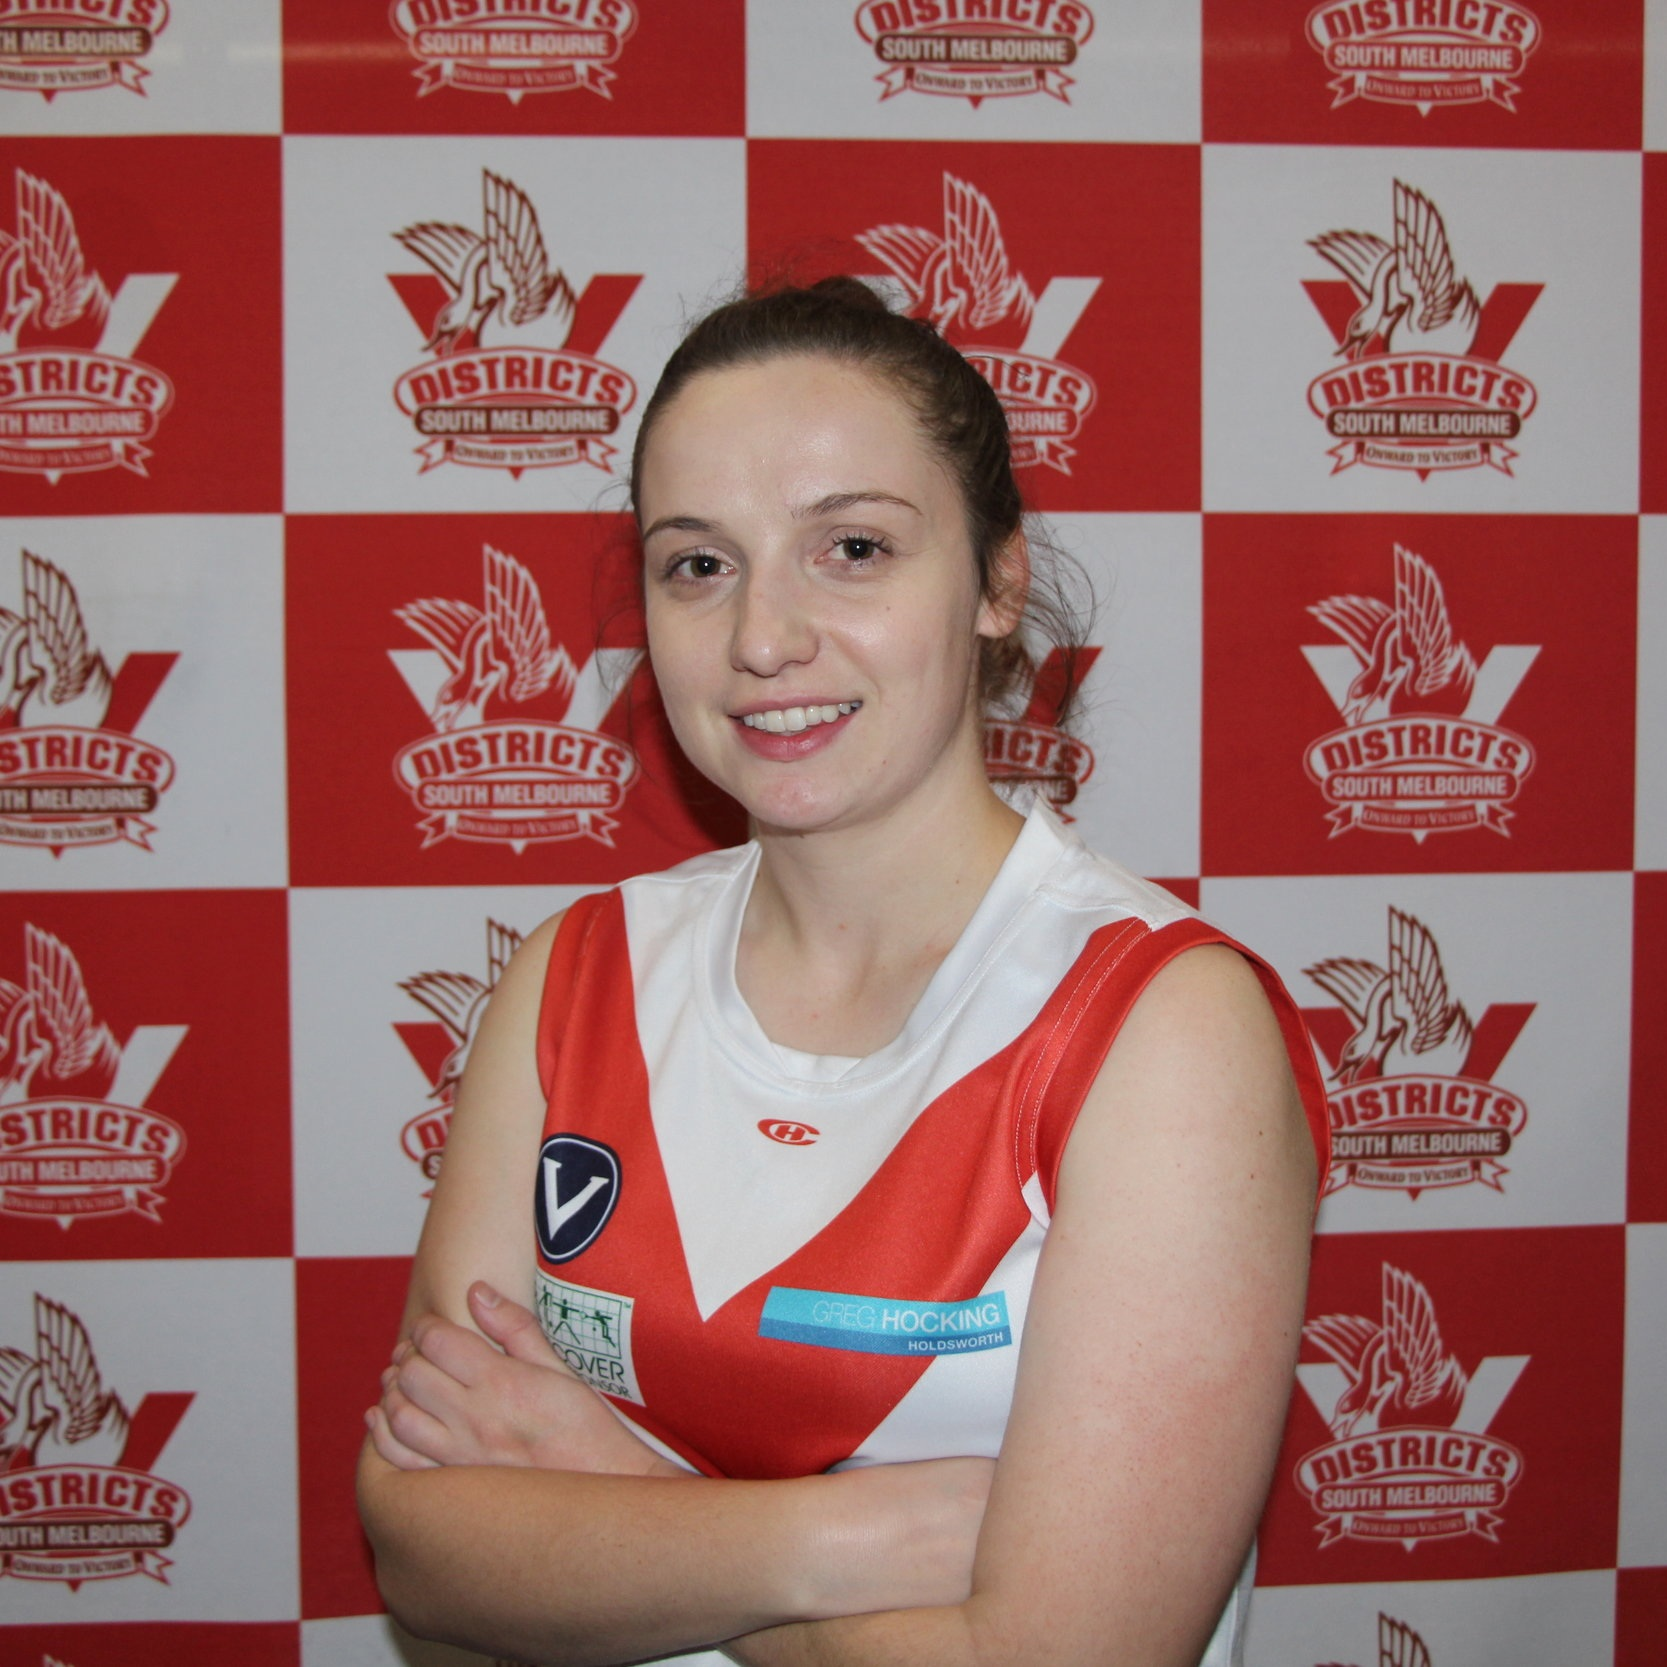 Bree  Bree is one of our newest players with just 30 days at the time of writing! After making her debut Bree has smashed her footy career into being and a broken thumb won't hold her back from being in the 2020 team! Bree's Friday night sounds like one we should all join with- movies, ice cream and the 'can't live without' Milo! Bree clearly fits our Bloods team with a shared love for Lady Gaga with Deb- attending a mere 13 shows makes her a super fan! One of Bree's off the field hobbies is making viral memes so watch this space for any 'best on social' mishaps over the season!